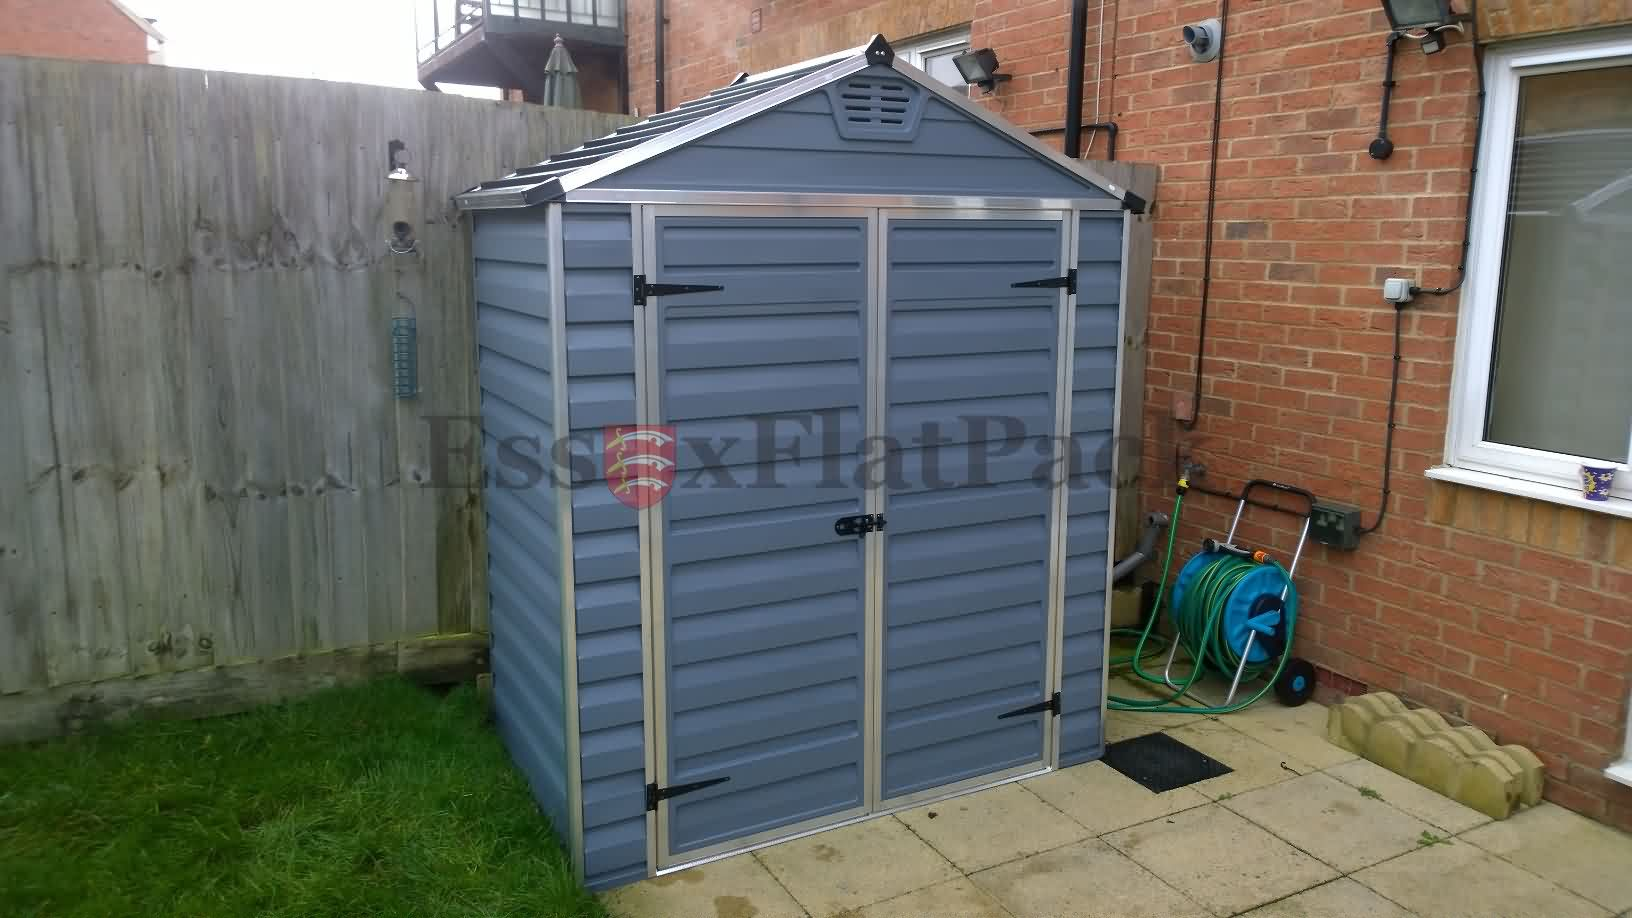 Installation and assembly of garden sheds and summer houses